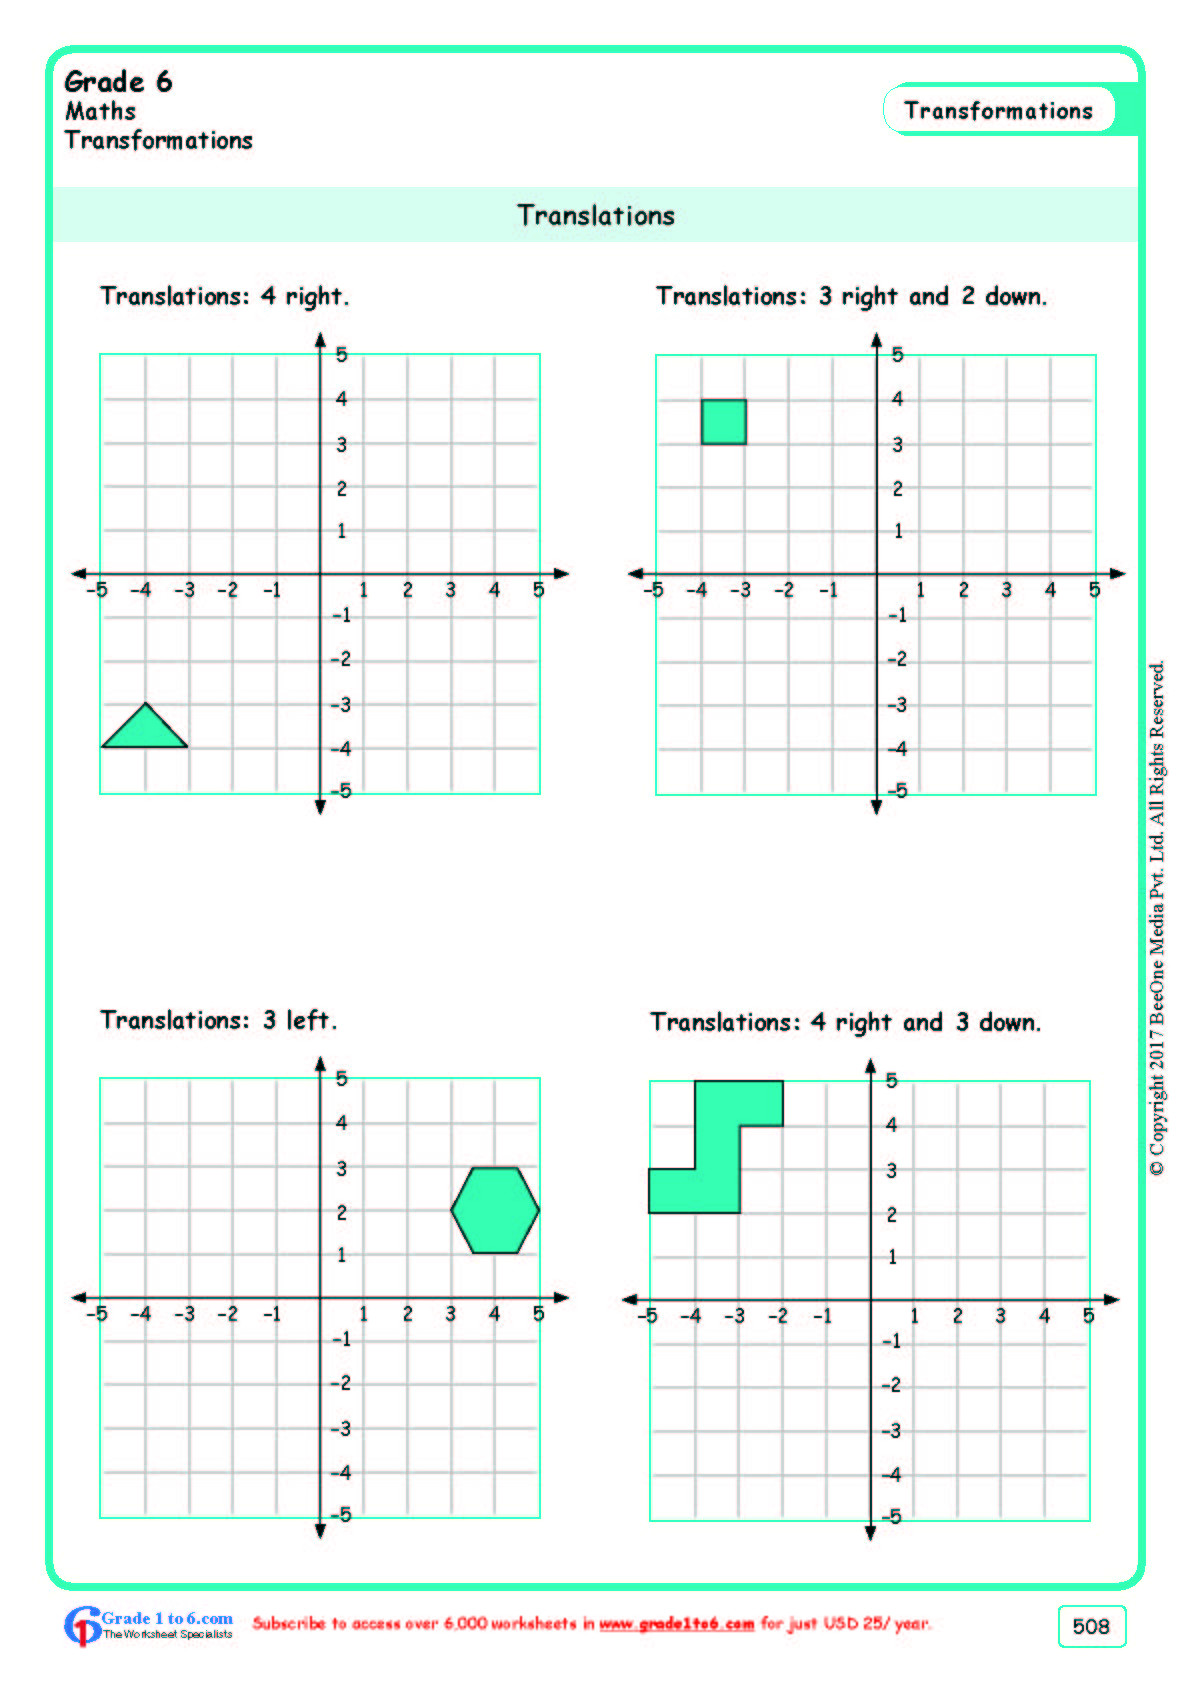 Translations Math Worksheets Grade 6 Class Six Translations Worksheets